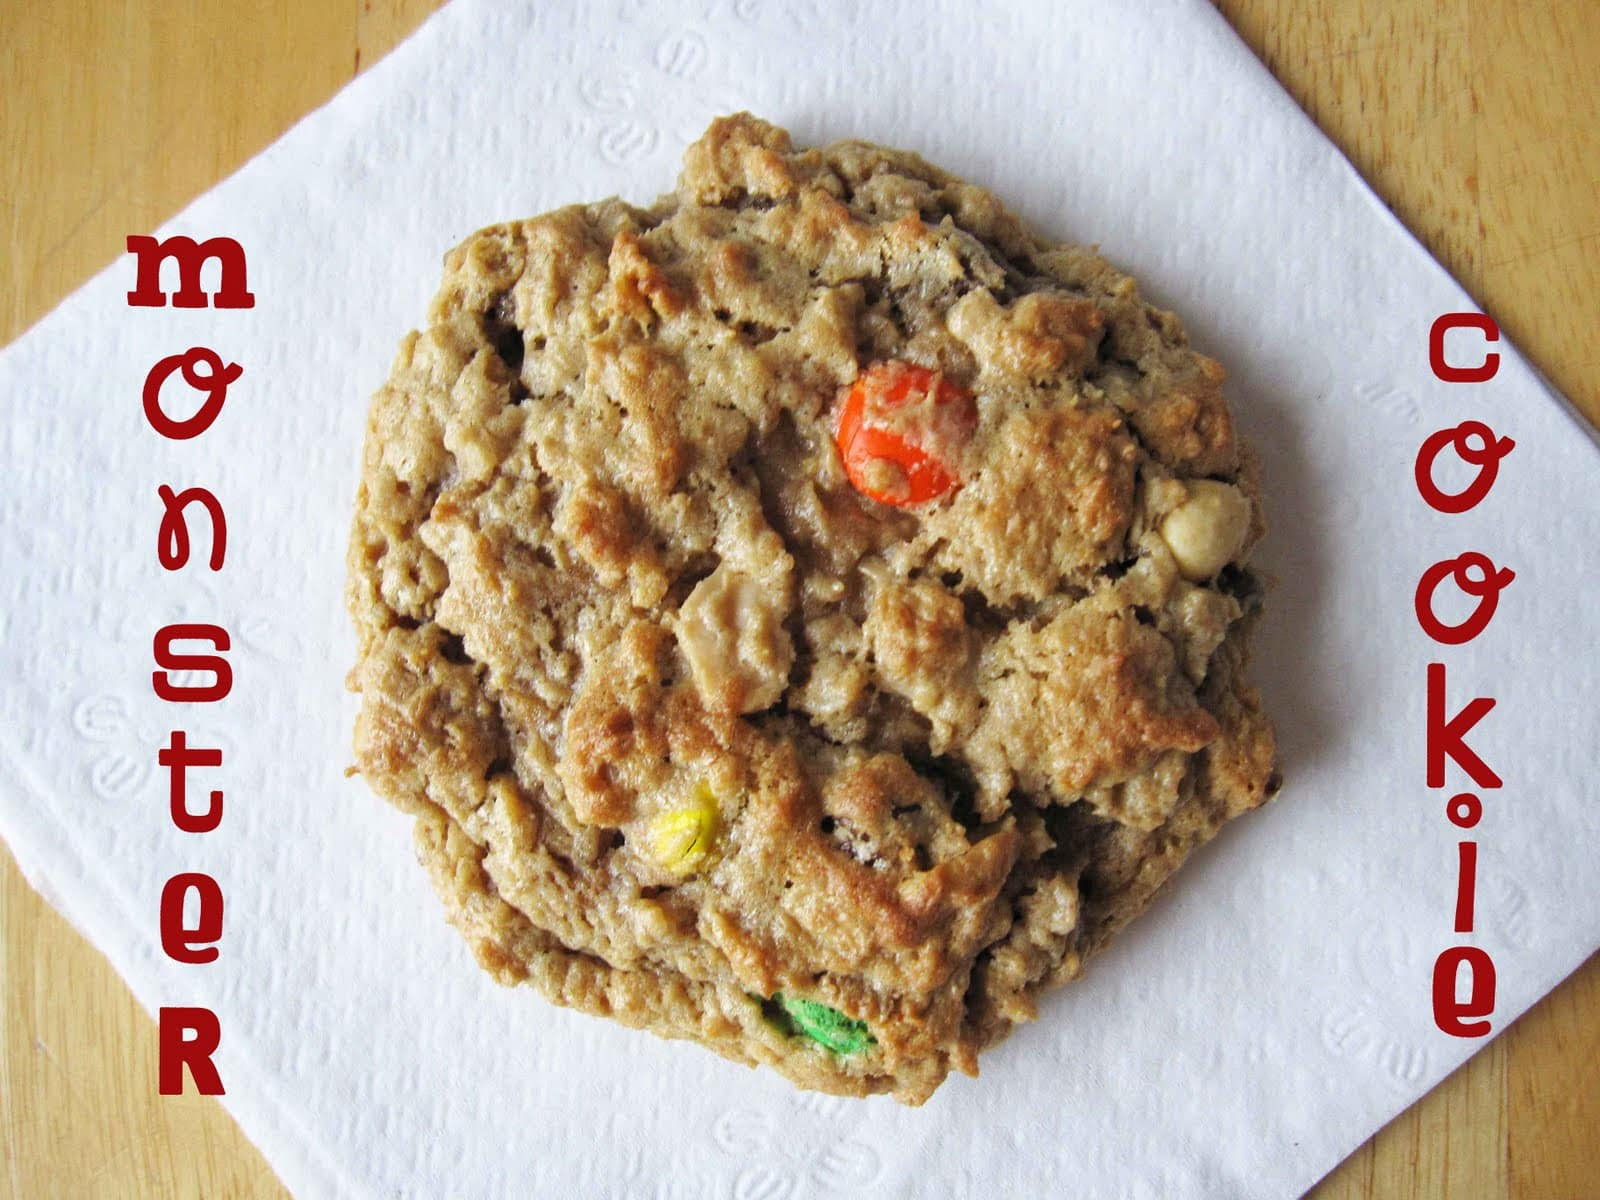 Top view of a monster cookie on a napkin